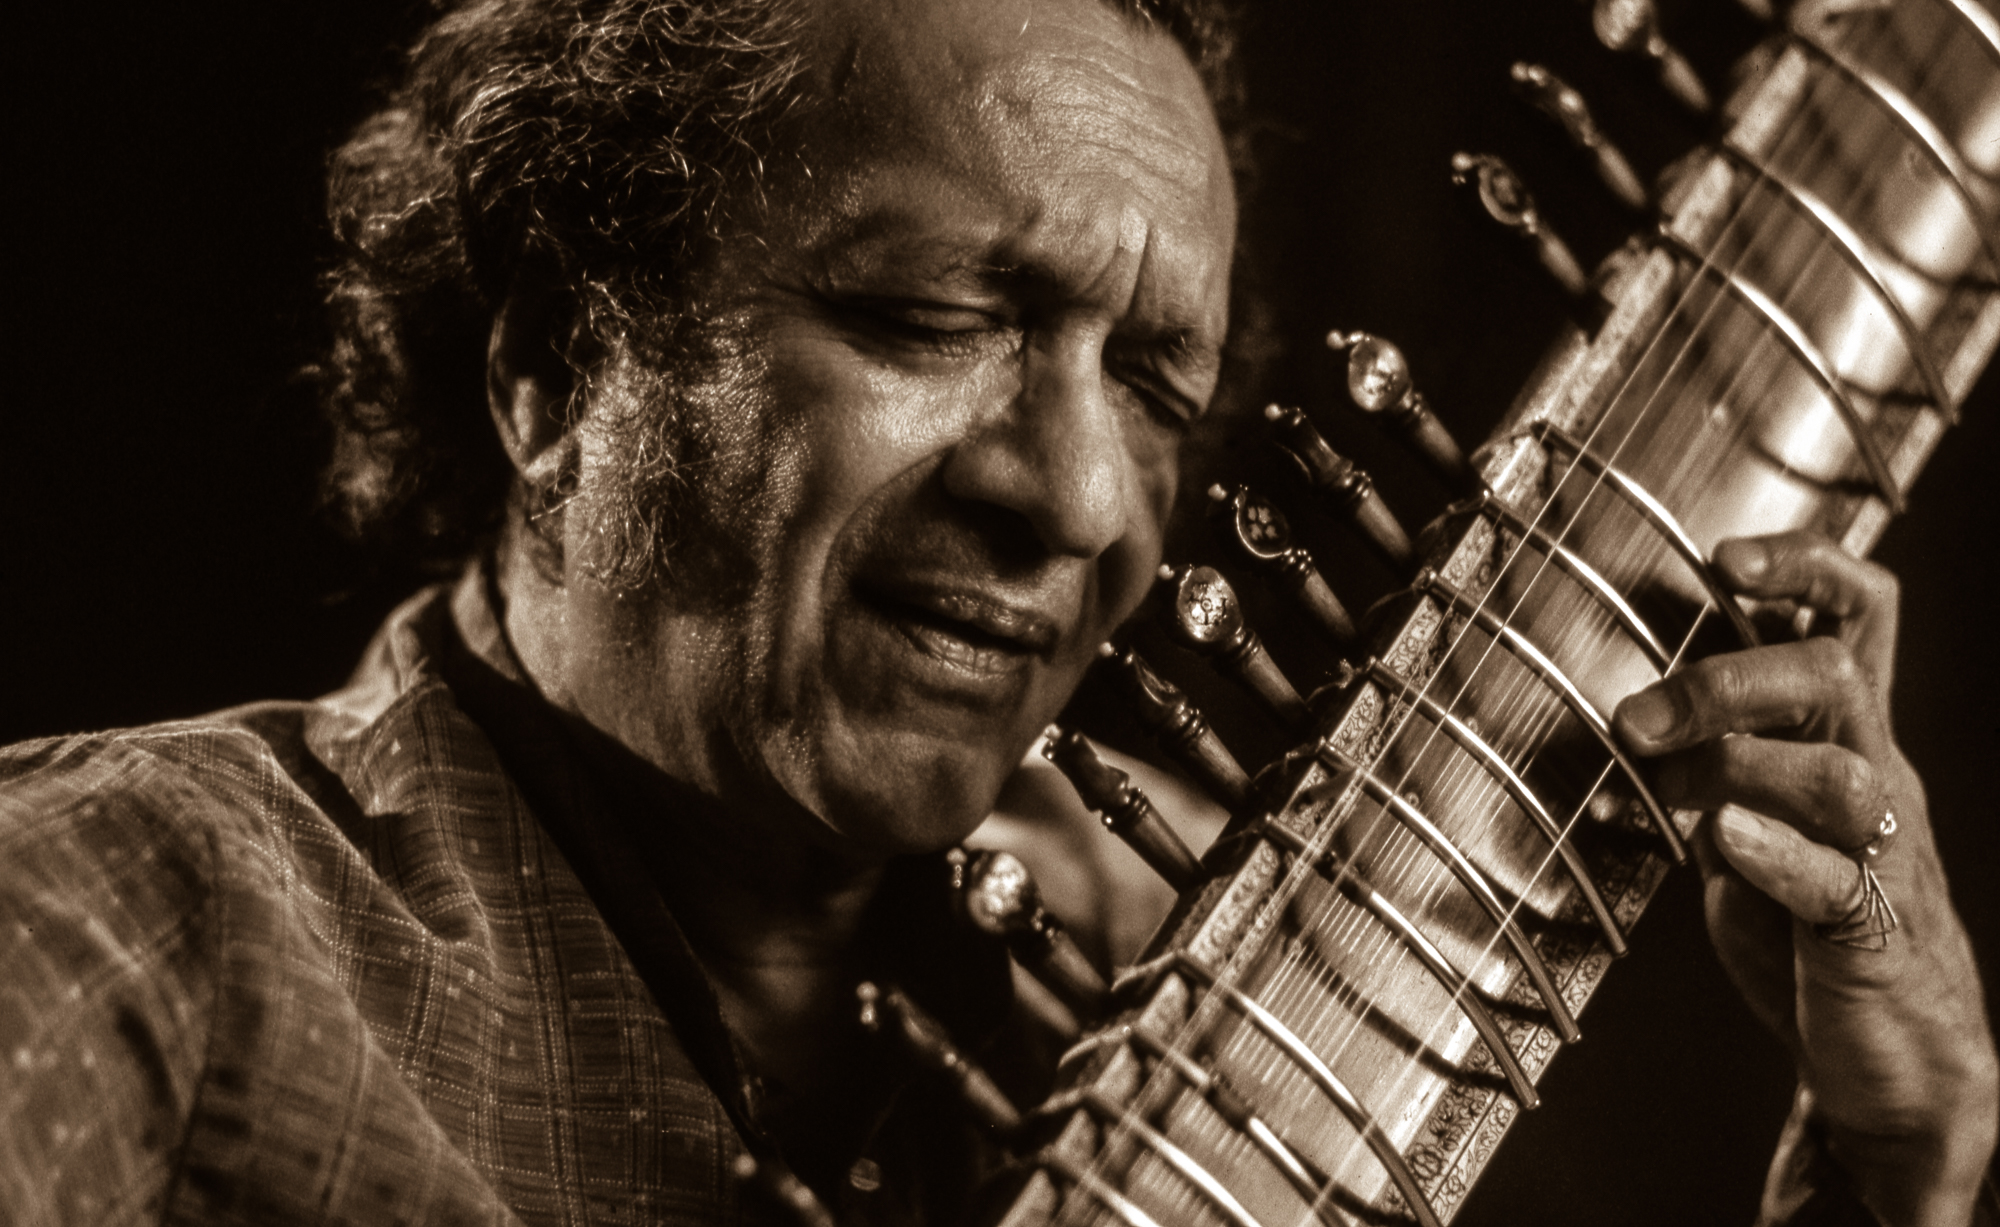 Through his shoots with subjects like friend Ravi Shankar (above), Alan Kozlowski documented both the spirit of musical artists and his own unique take on life.